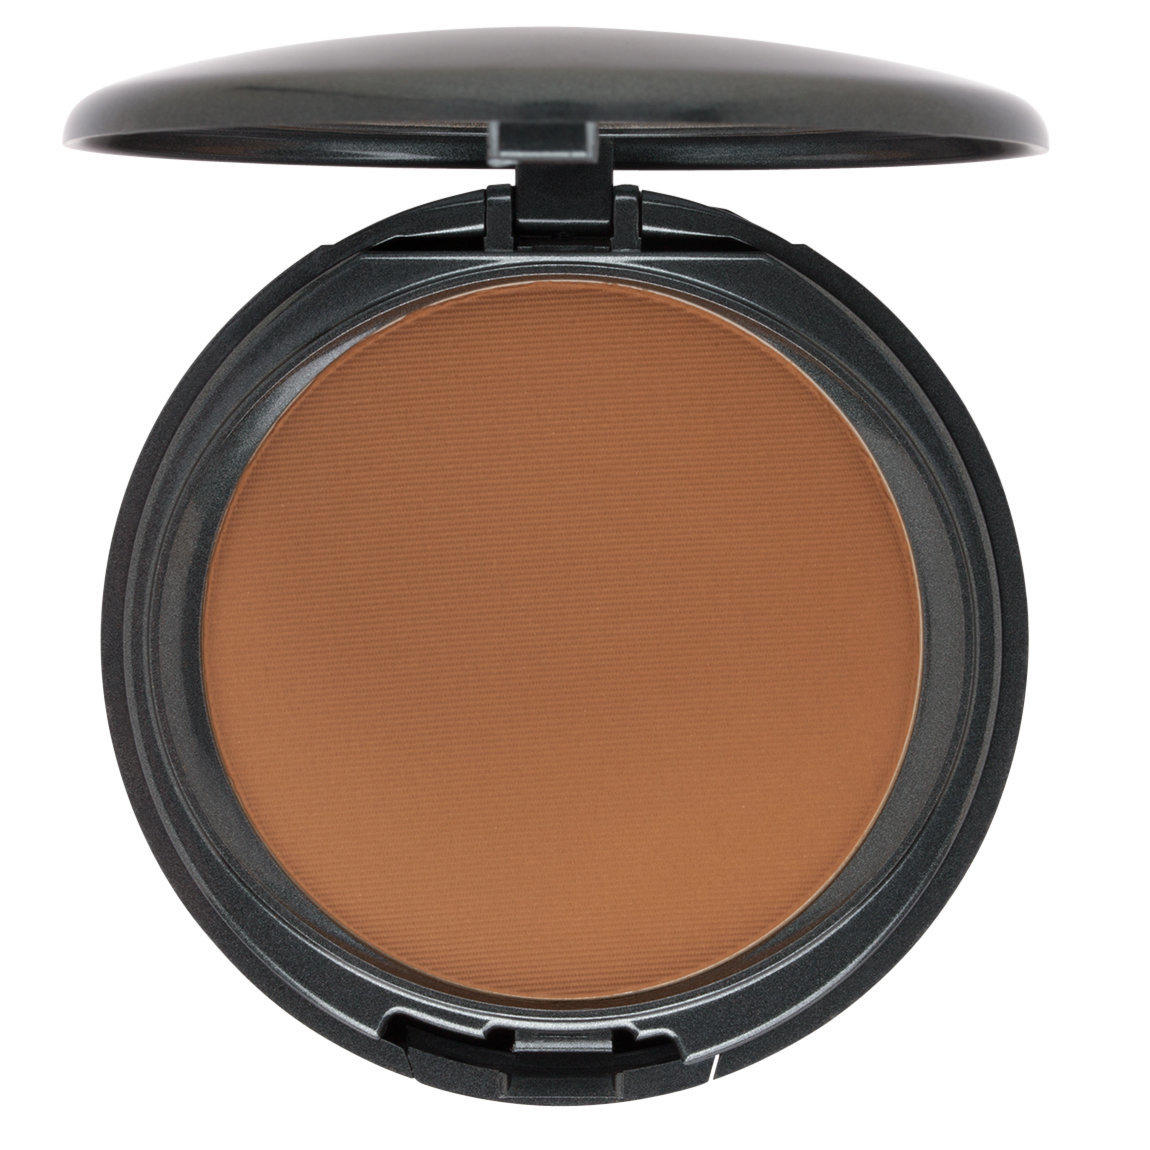 Cover FX Pressed Mineral Foundation G100